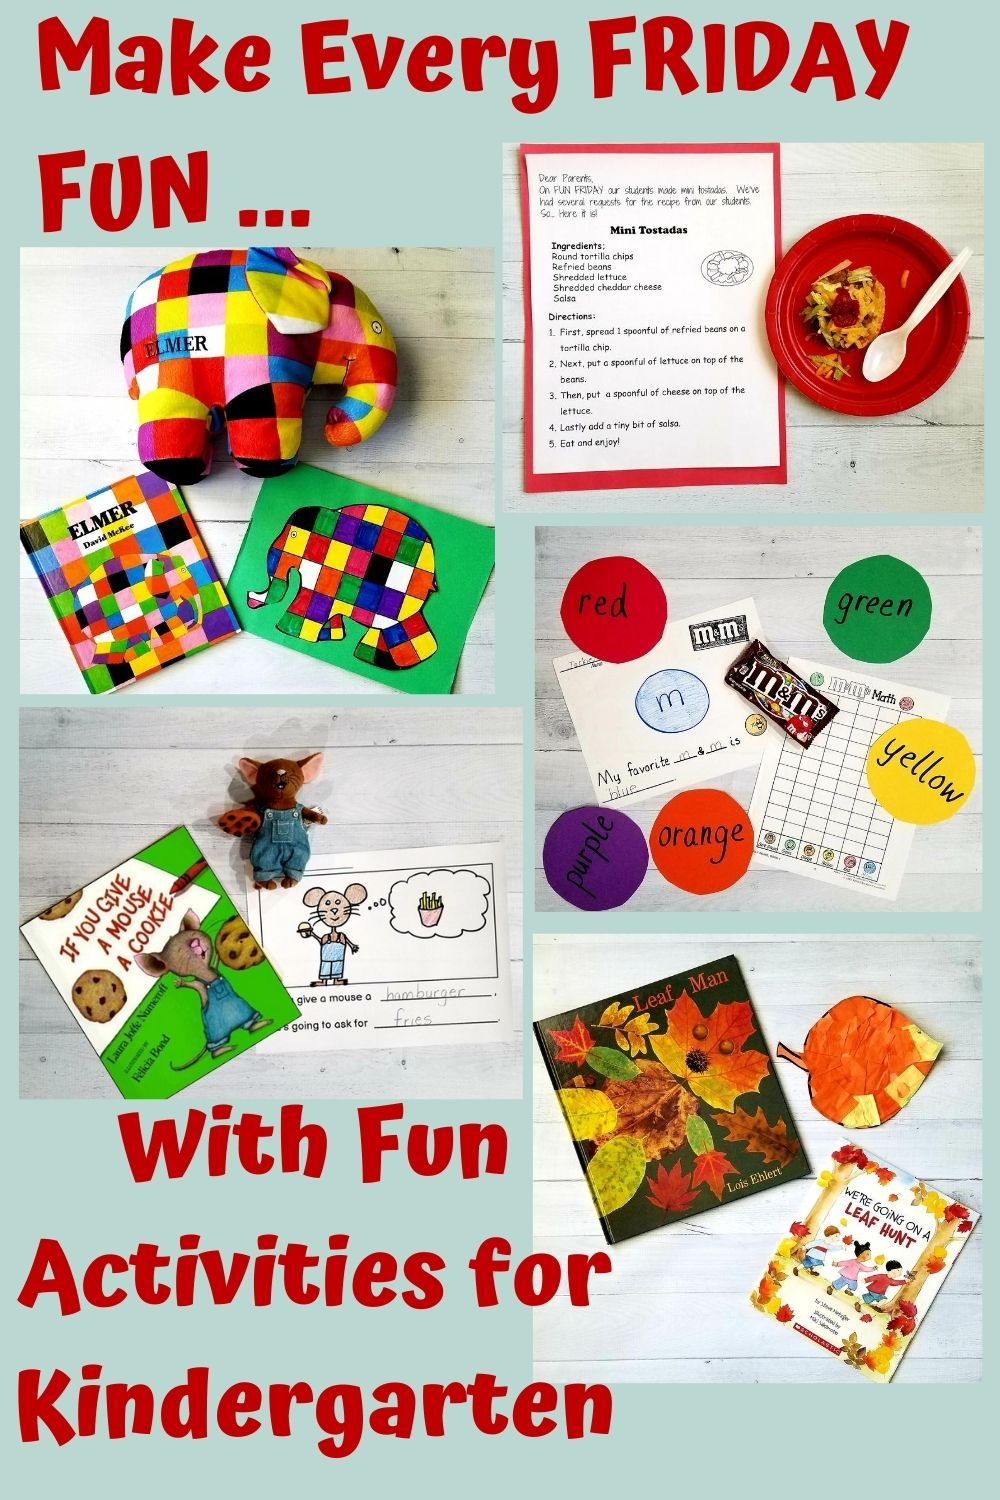 Make Every Friday Fun With Fun Activities for Kindergarten